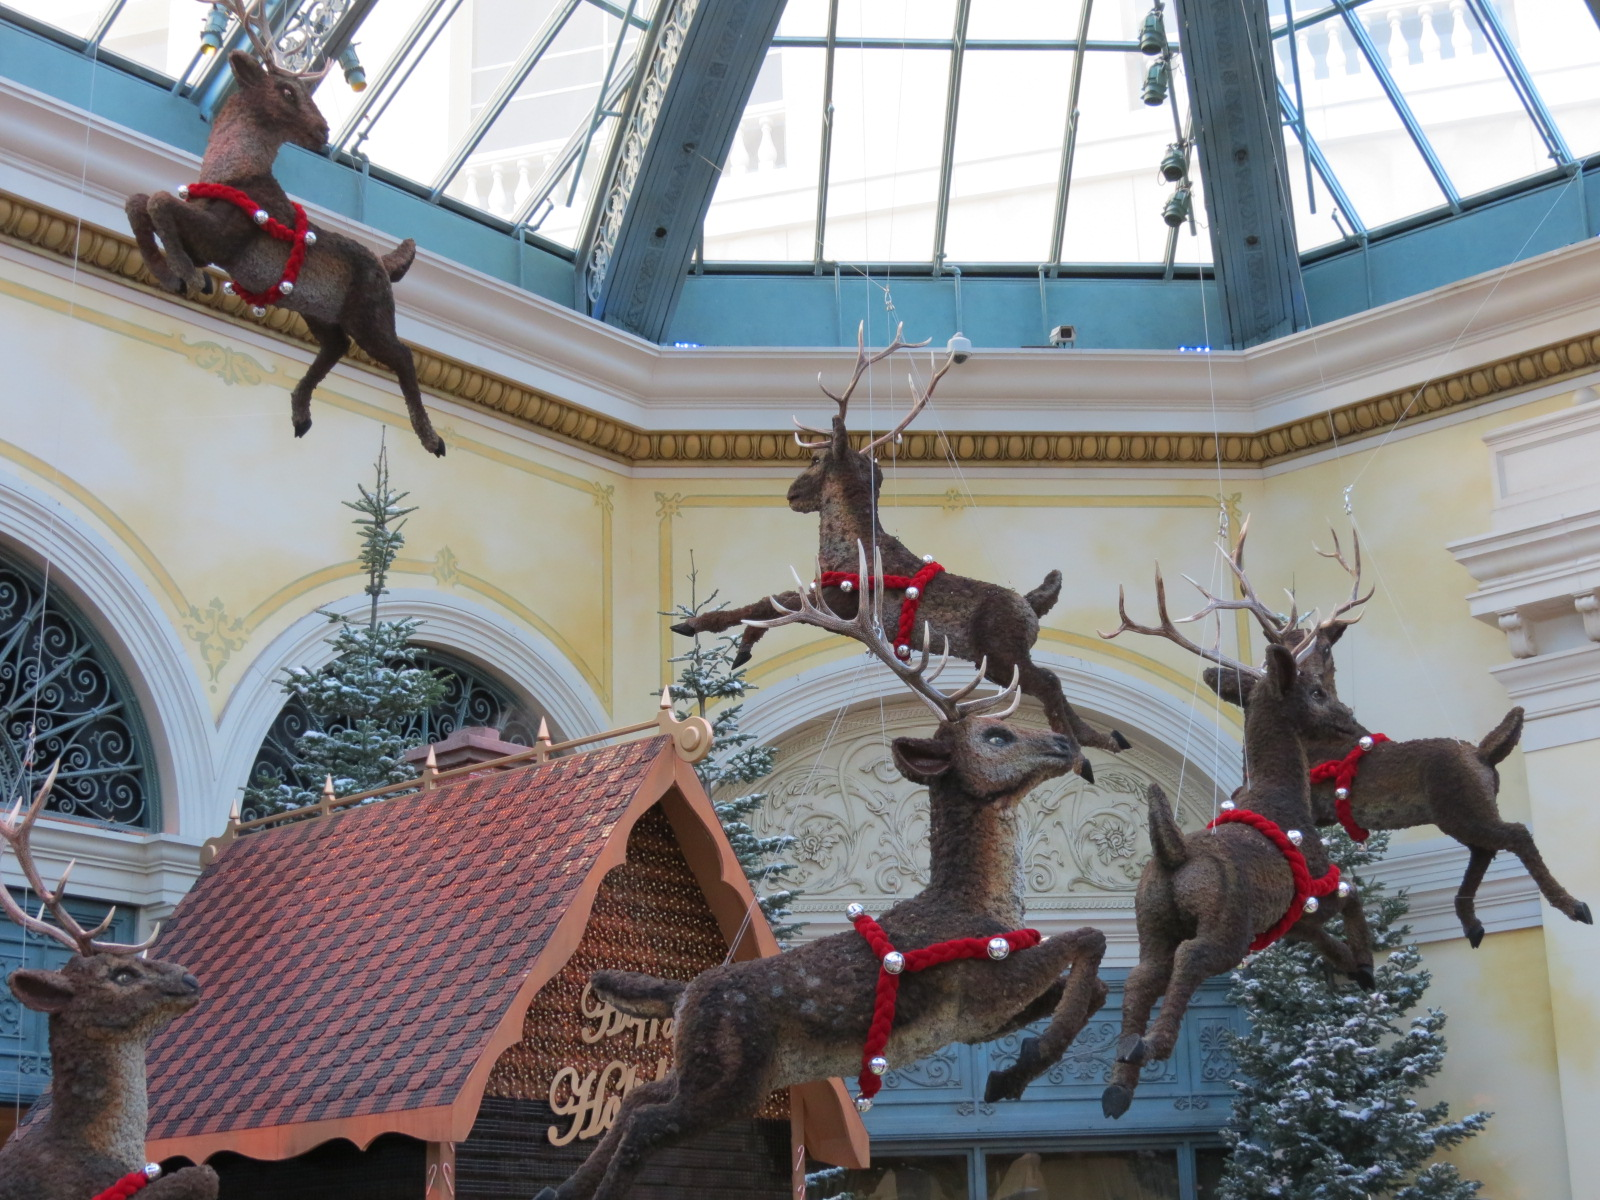 Santa's Raindeer flying in the Bellagio